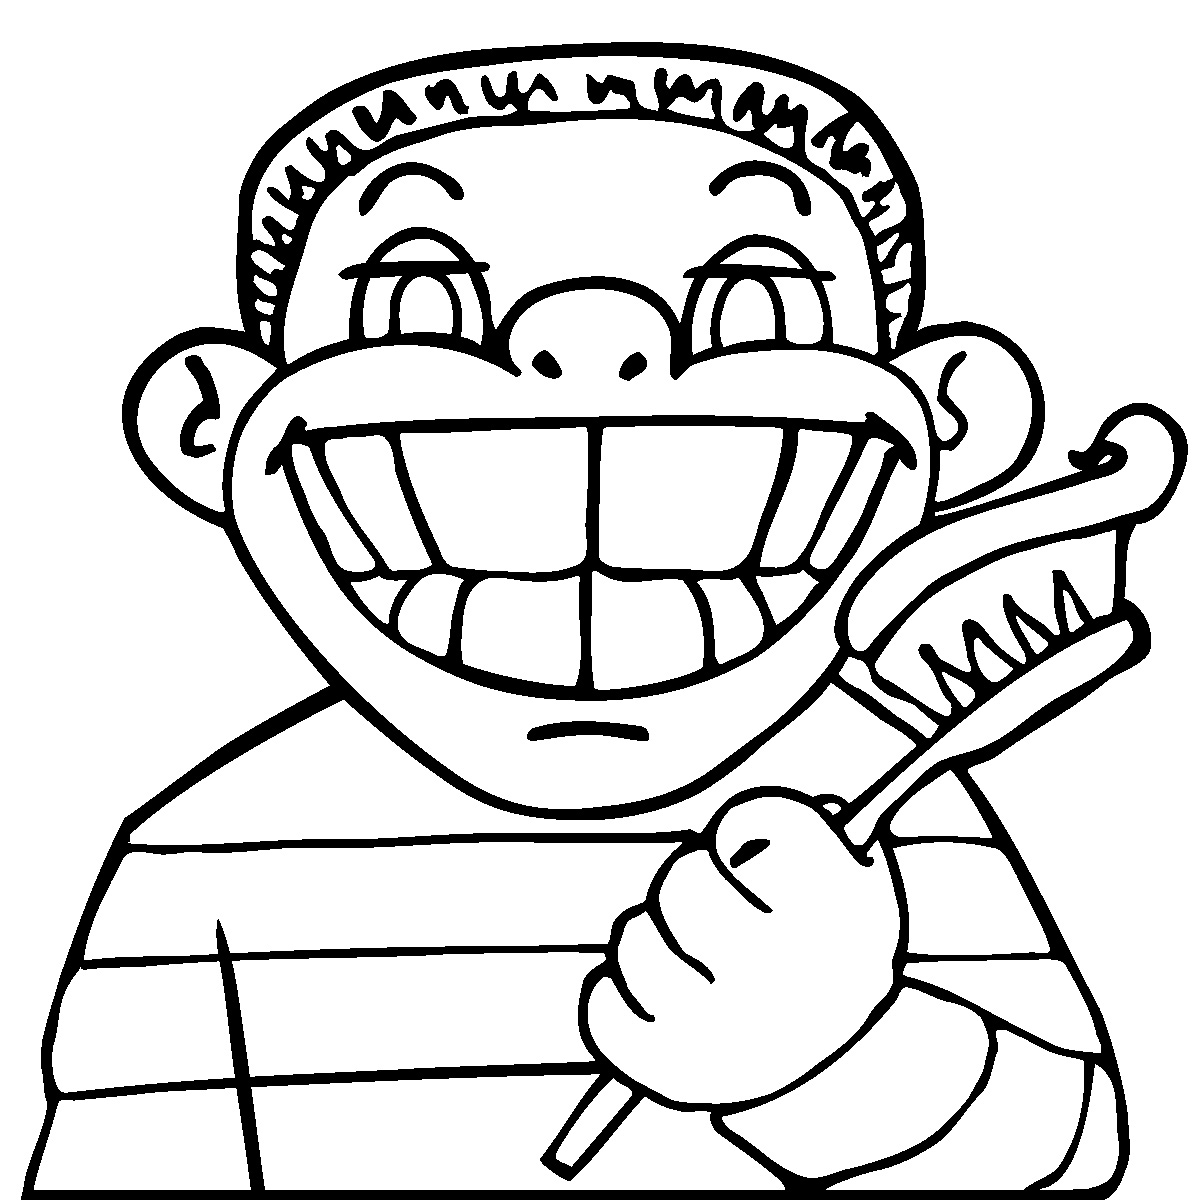 Free Hygiene Clipart Black And White, Download Free Clip Art.